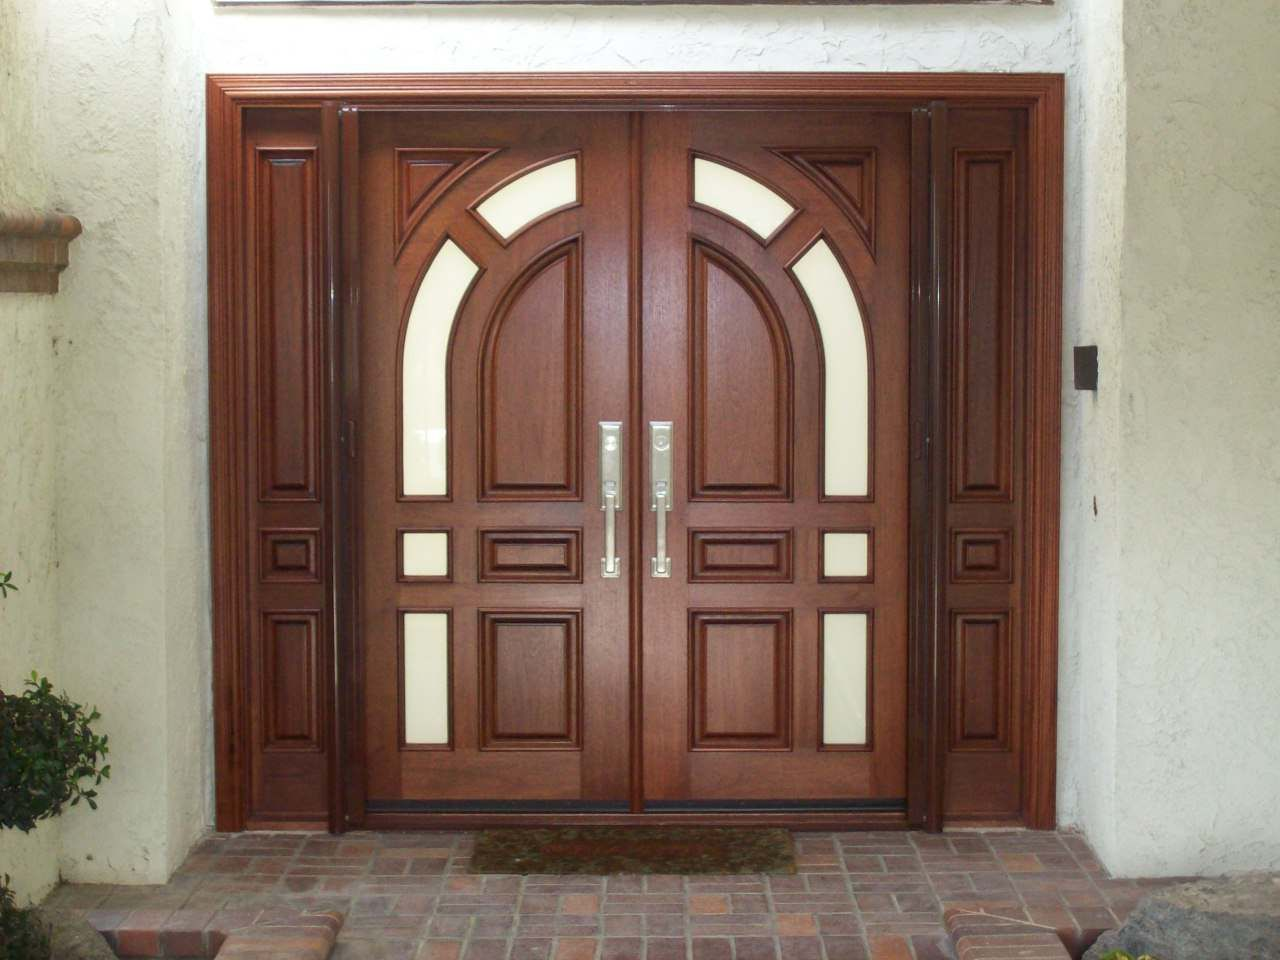 Exterior front doors double - 20 Amazing Industrial Entry Design Ideas